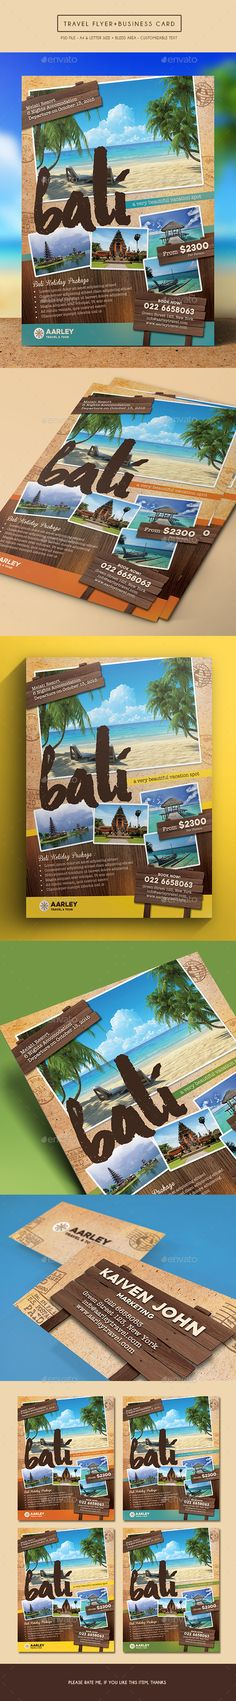 Buy Travel Flyer + Business Card by arifpoernomo on GraphicRiver. This Travel Flyer, can be used for promote your travel agency. Very easy to edit text, color, and change images via s. Banner Design, Flyer Design, Business Card Design, Business Cards, Banners, Leaflet Design, Promotional Flyers, Flyer Printing, Event Flyers